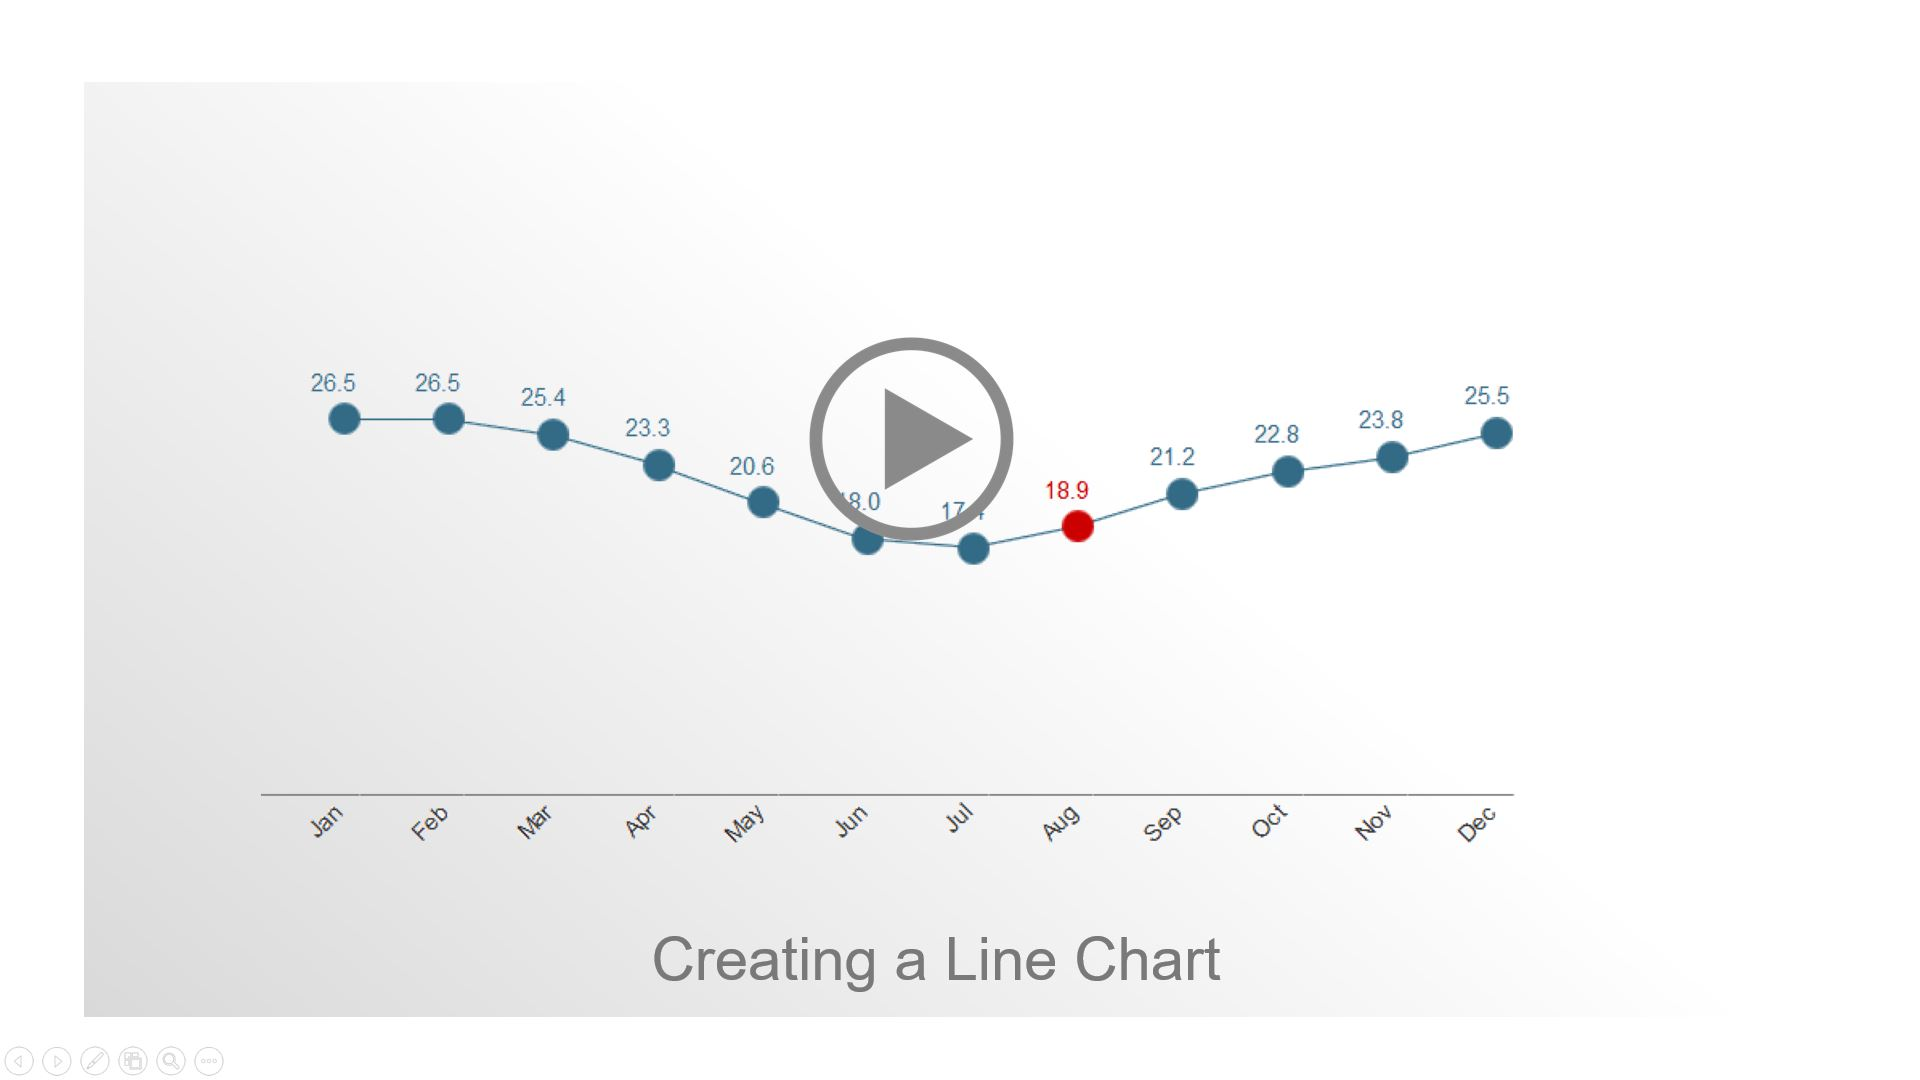 Creating a line chart in Axure, Tutorial